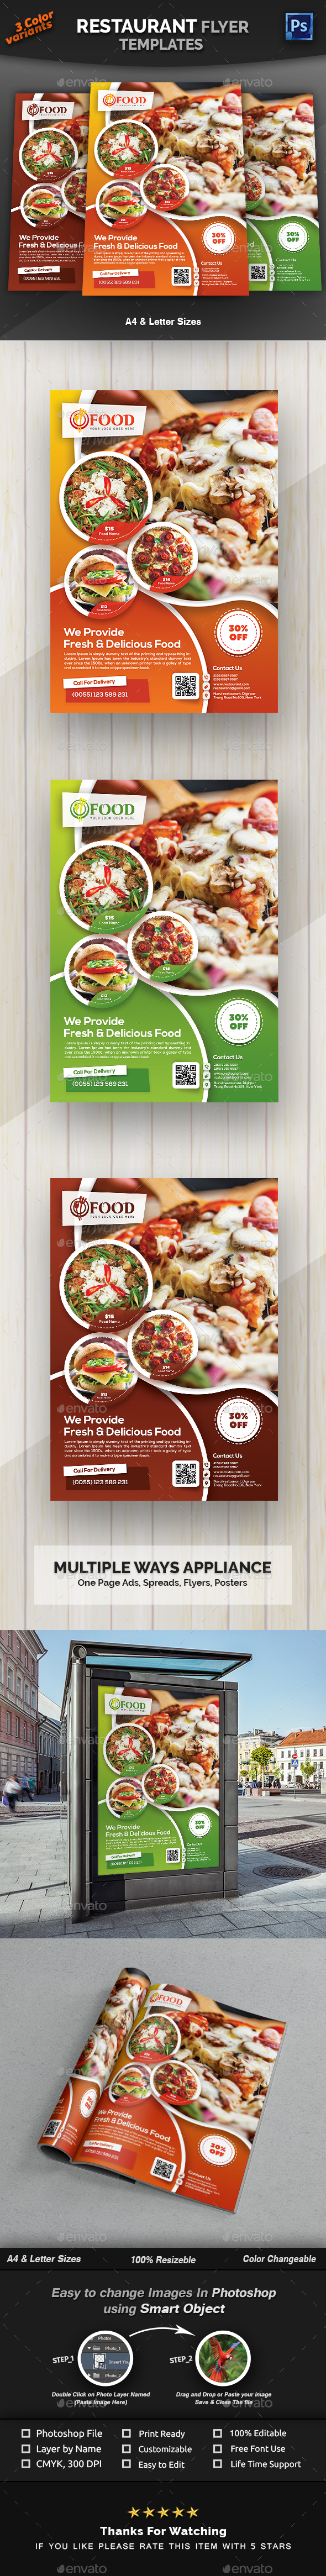 Restaurant Flyer Template - Restaurant Flyers